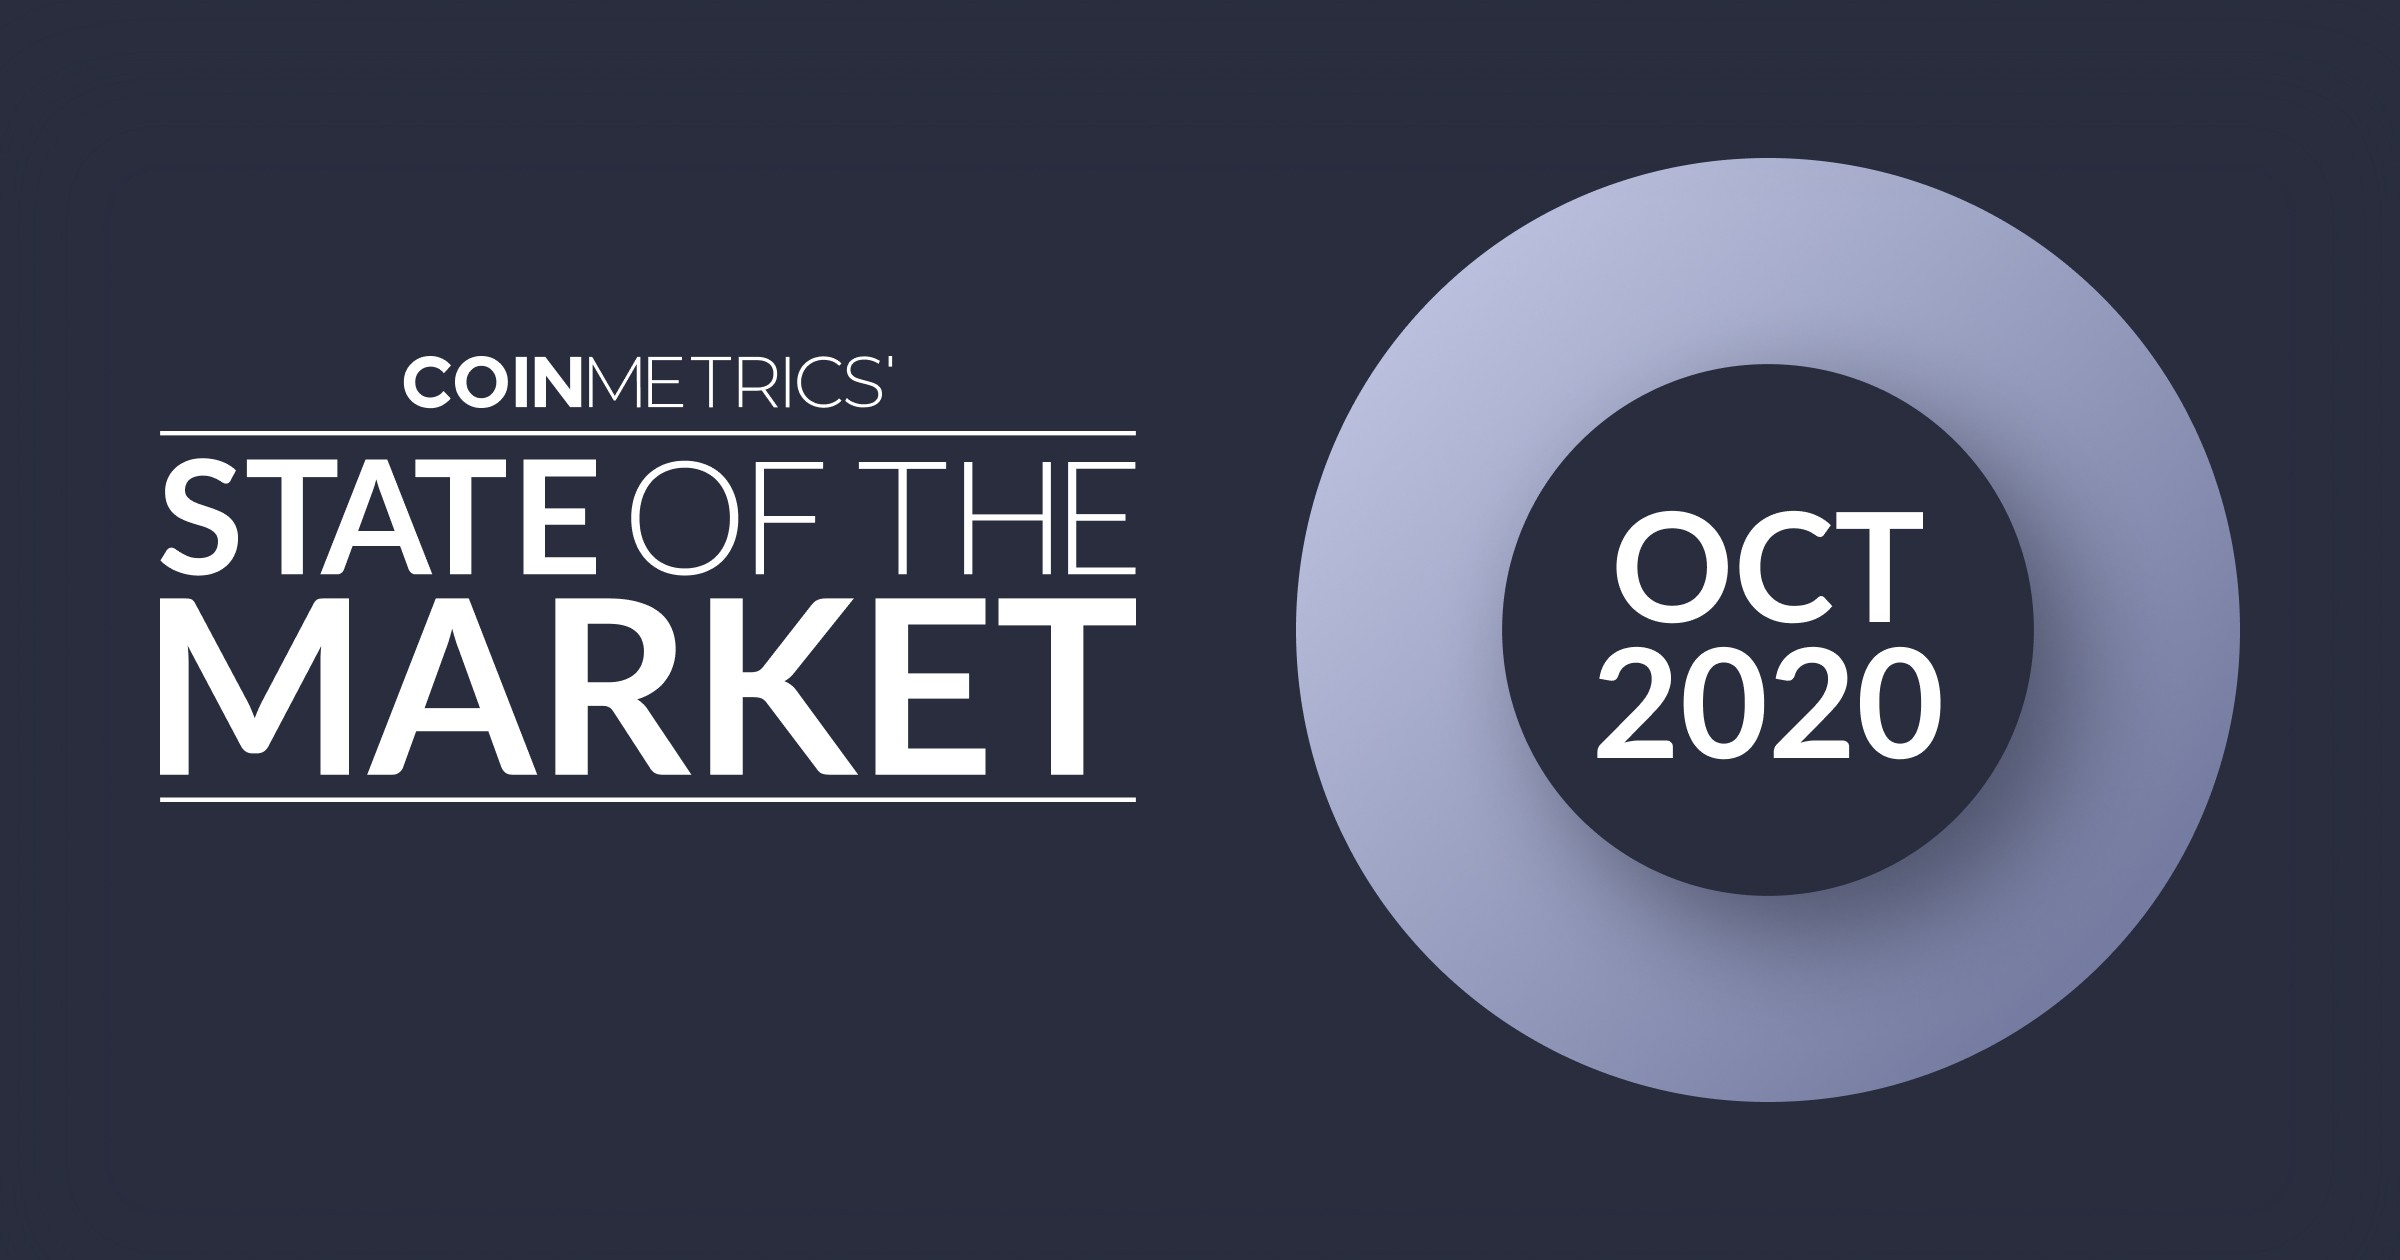 State of the Market - Oct 2020